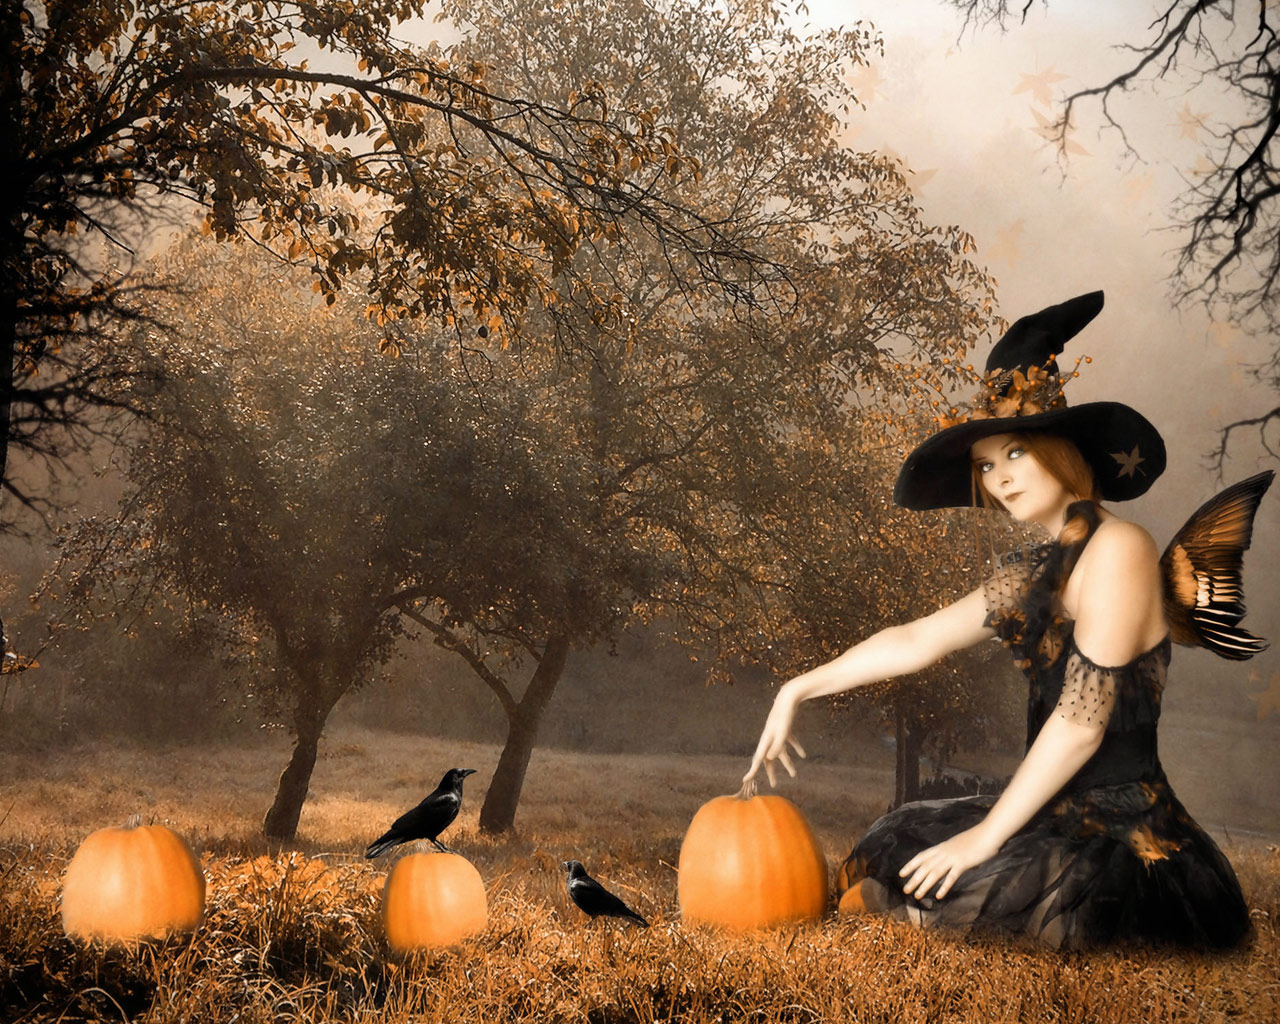 http://1.bp.blogspot.com/_D6V8KS70KD8/TKHsCafQj5I/AAAAAAAACuU/O7H_TbmRODo/s1600/All_Hallows_Eve_Witch.jpg